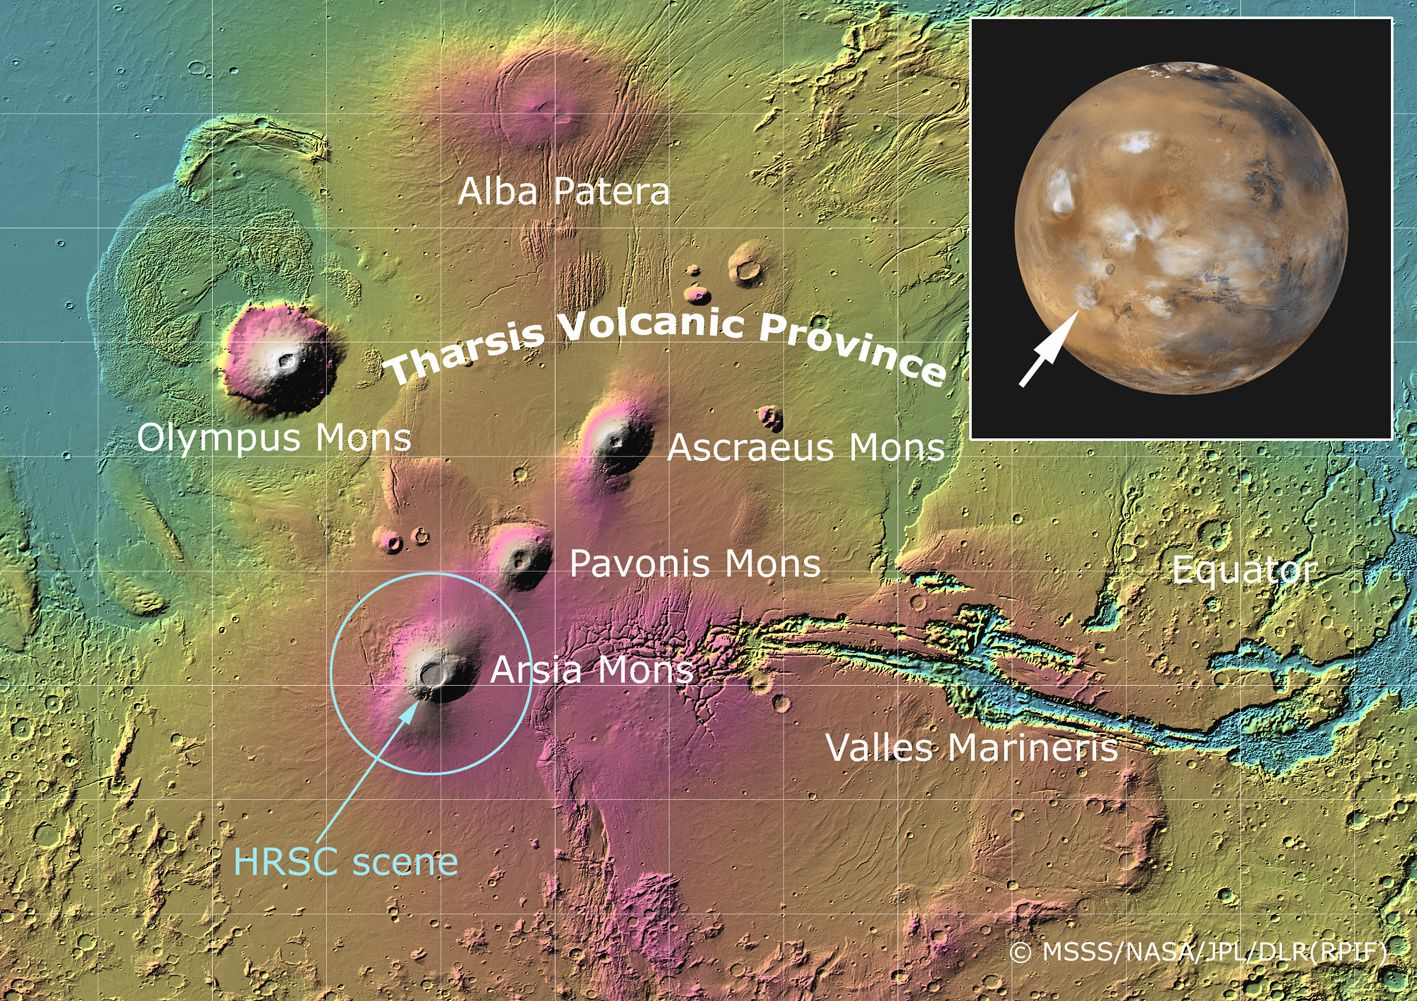 La Province volcanique Tharsis / MARS  - doc. ESA / DLR / FU Berlin (G. Neukum) - Original image data by NASA